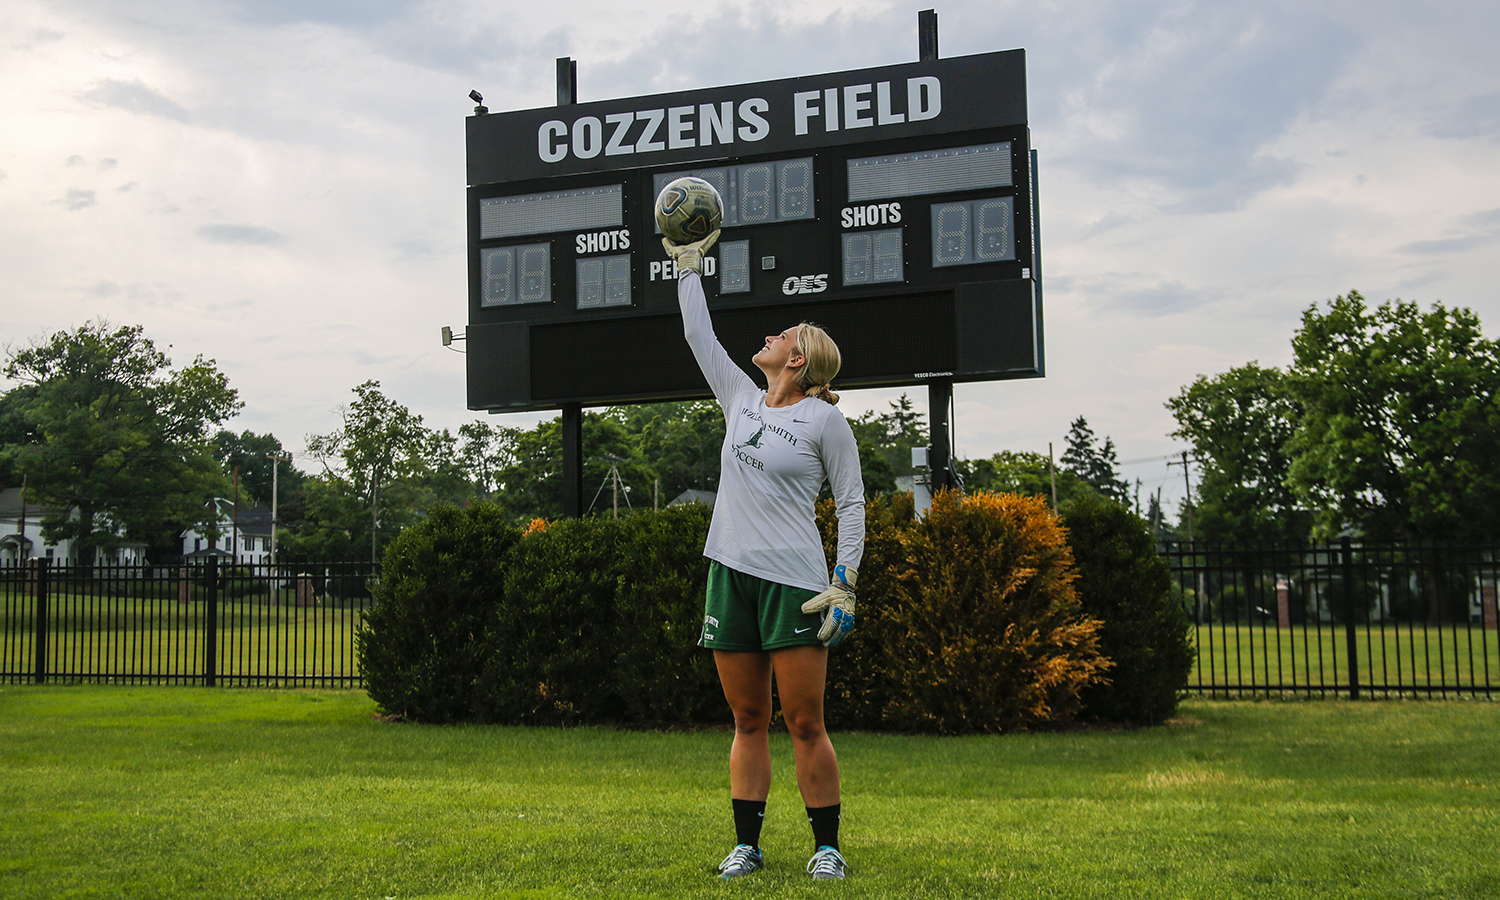 Ally Bryan '20, a Varisty William Smith soccer player, stands on Cozzens Field. Cozzens is her favourite place on campus because of the amazing memories of her friends and teammates both in practice and in games. Ally is on campus this summer doing genetics research with Professor Cosentino in the Biology Department.